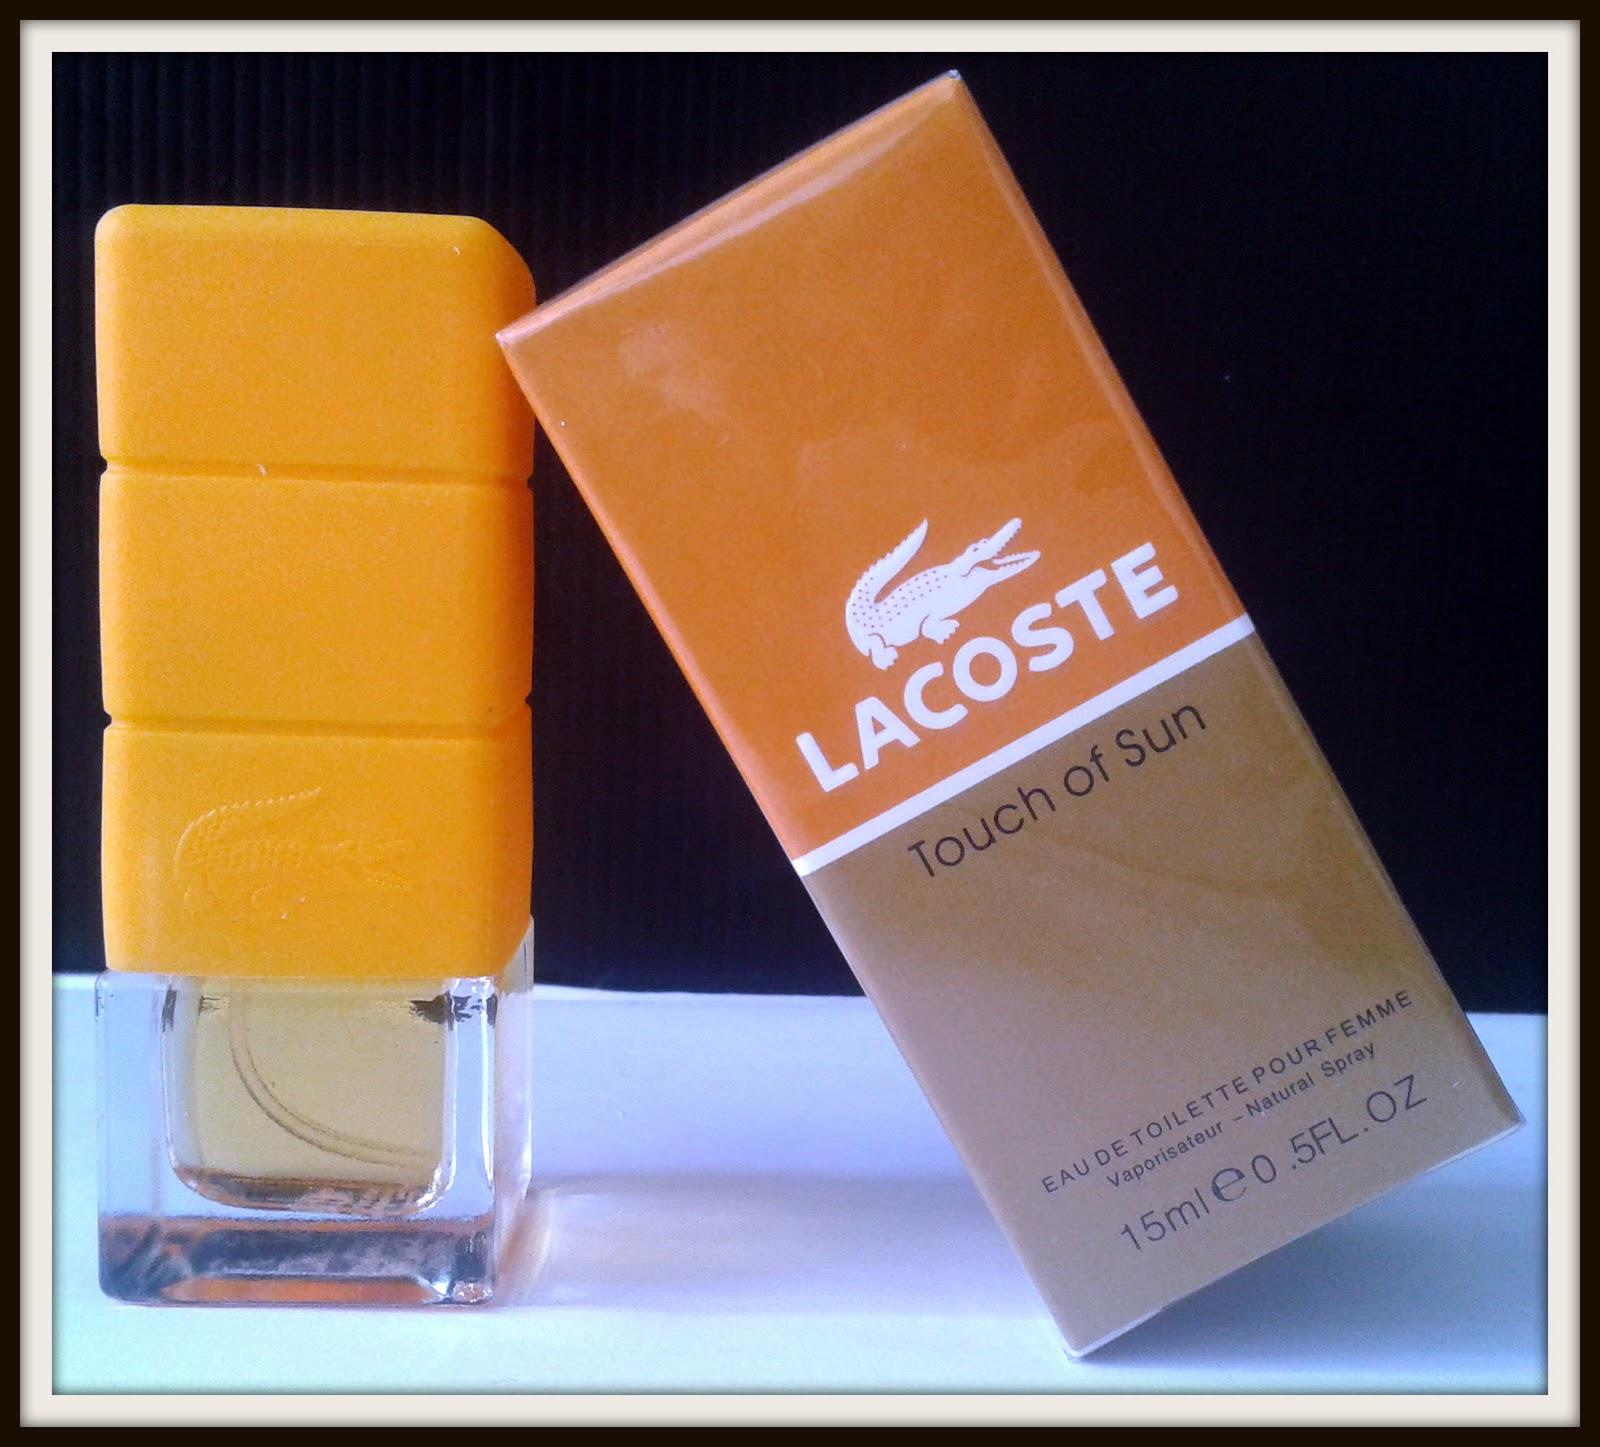 924854a8f75f ~~Miniature Touch Of Sun By Lacoste~~ ~~Women~~ ~~EDT~~ ~~Fragrance Spray~~  ~~0.17 fl oz 15 ml~~ ~~Brand New in Box